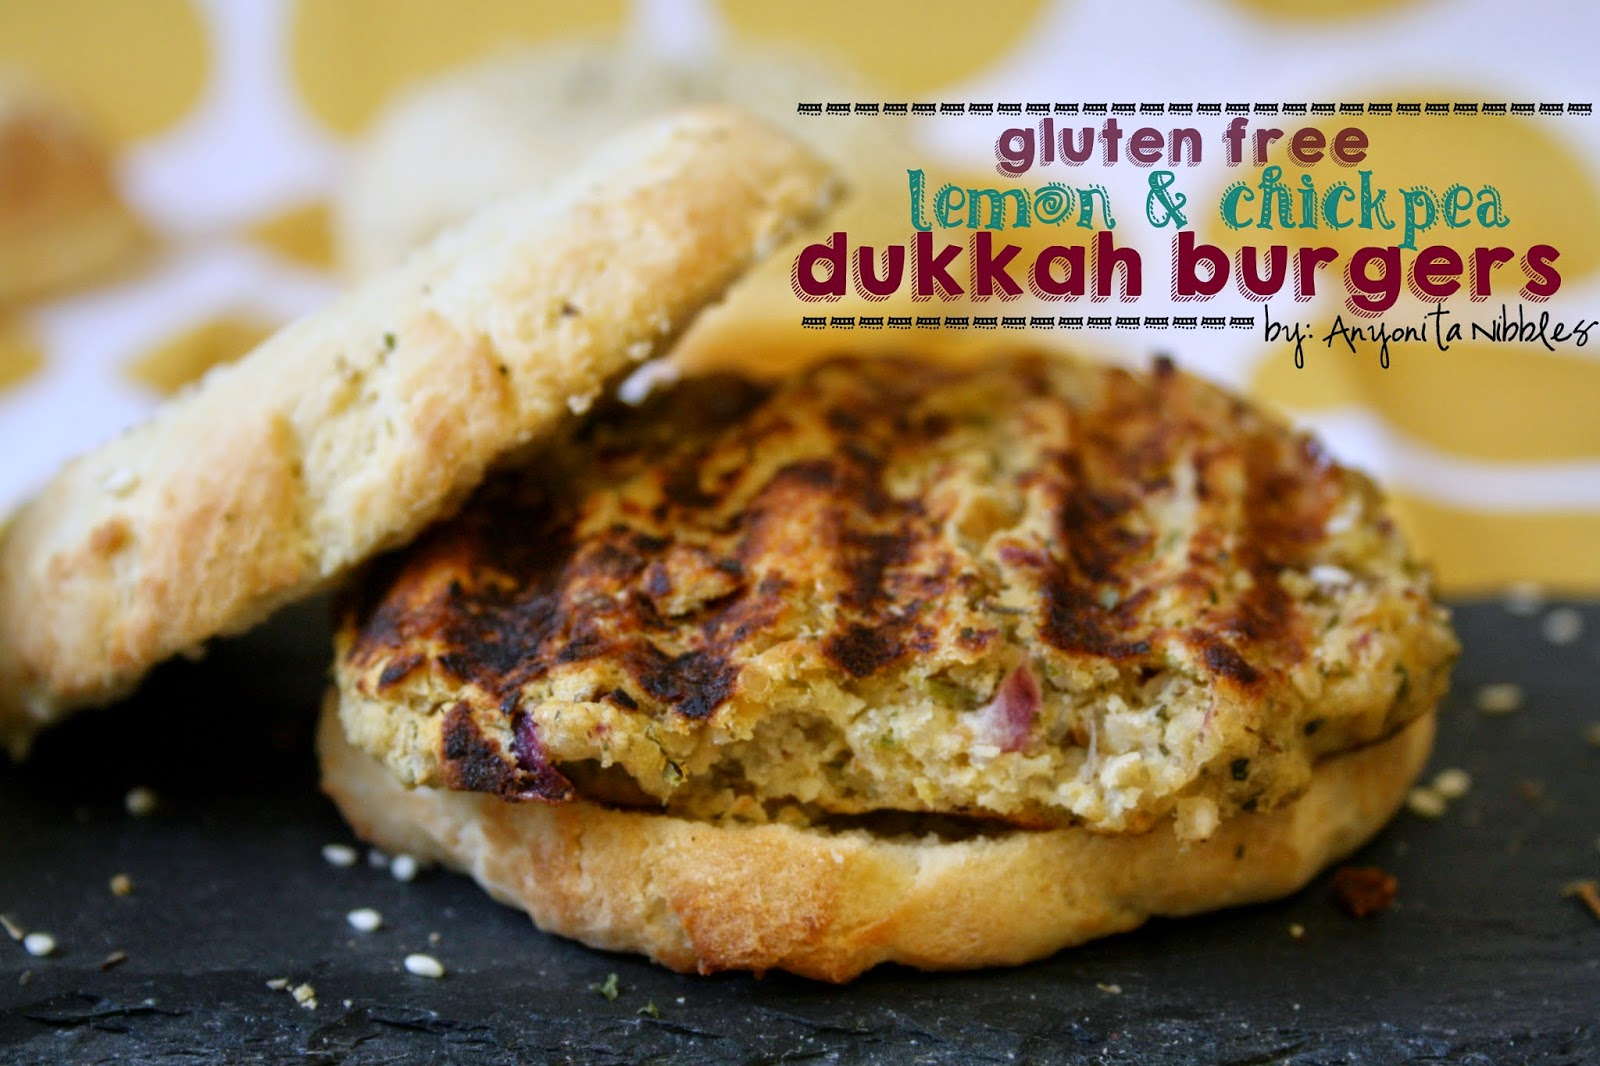 Vegetarian burgers made with chickpeas and quinoa served on the best homemade gluten free burger buns.